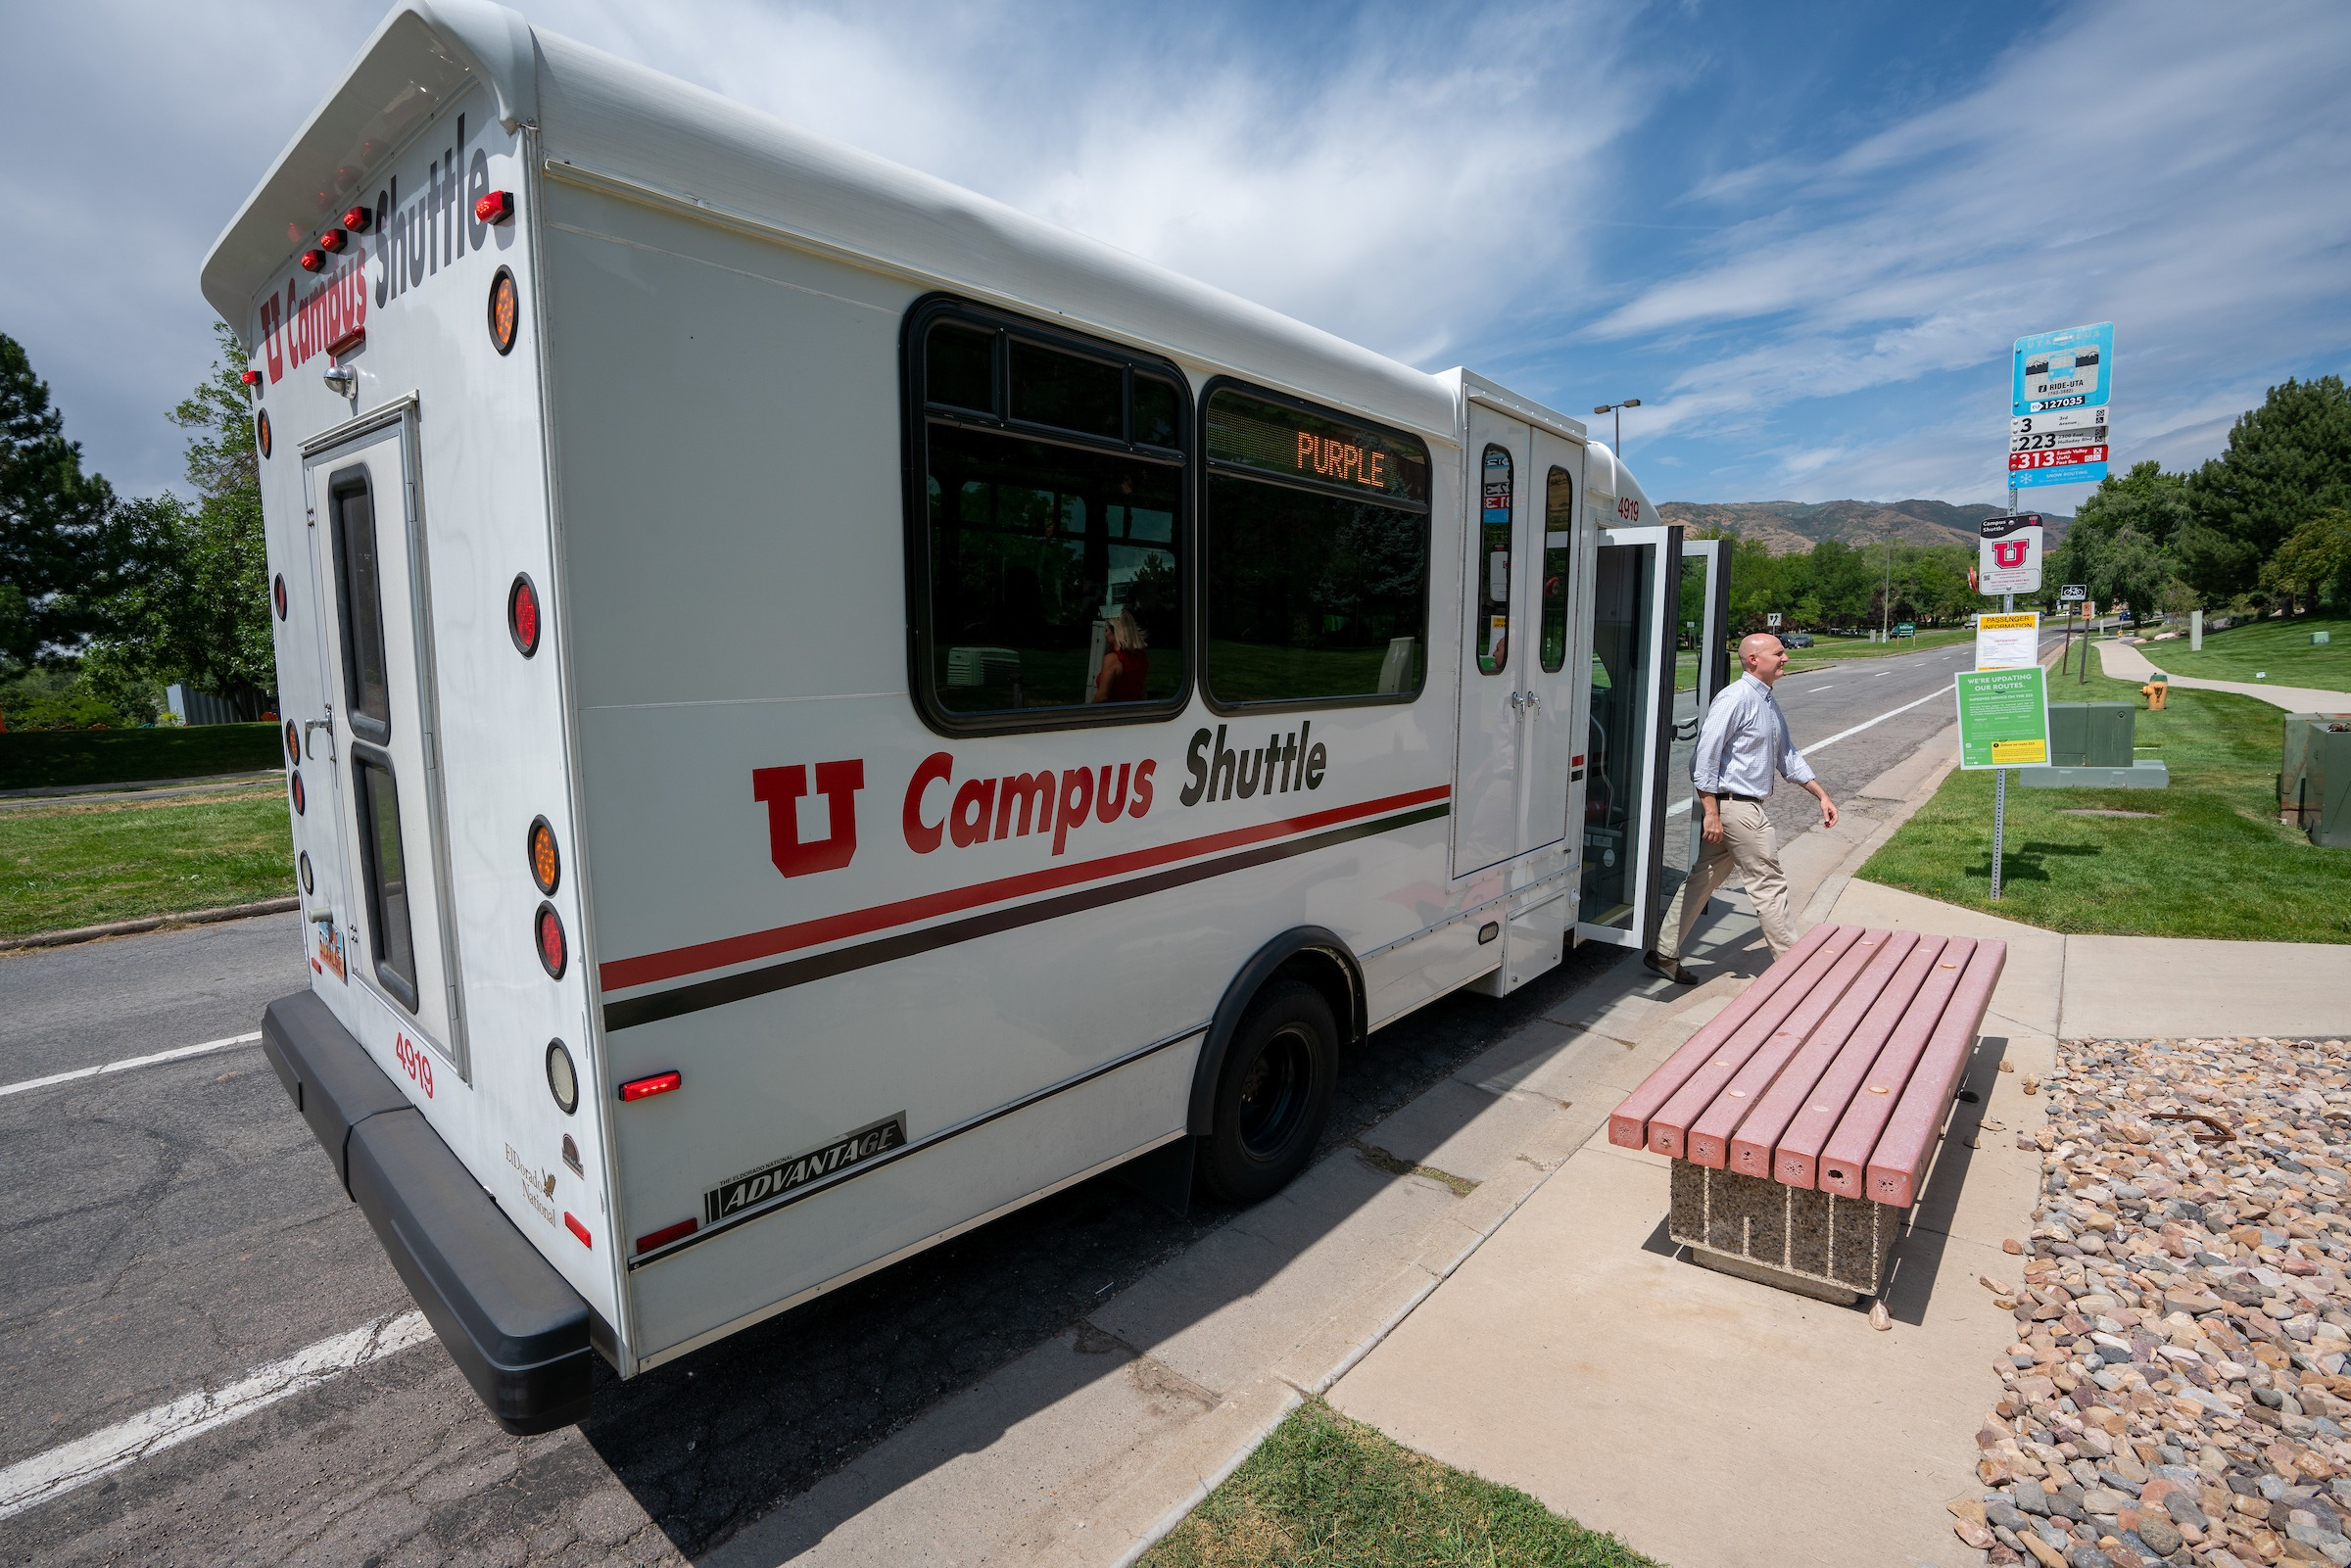 A campus shuttle picks lets off a rider on a sunny, early summer day. Wispy clouds are in the sky.